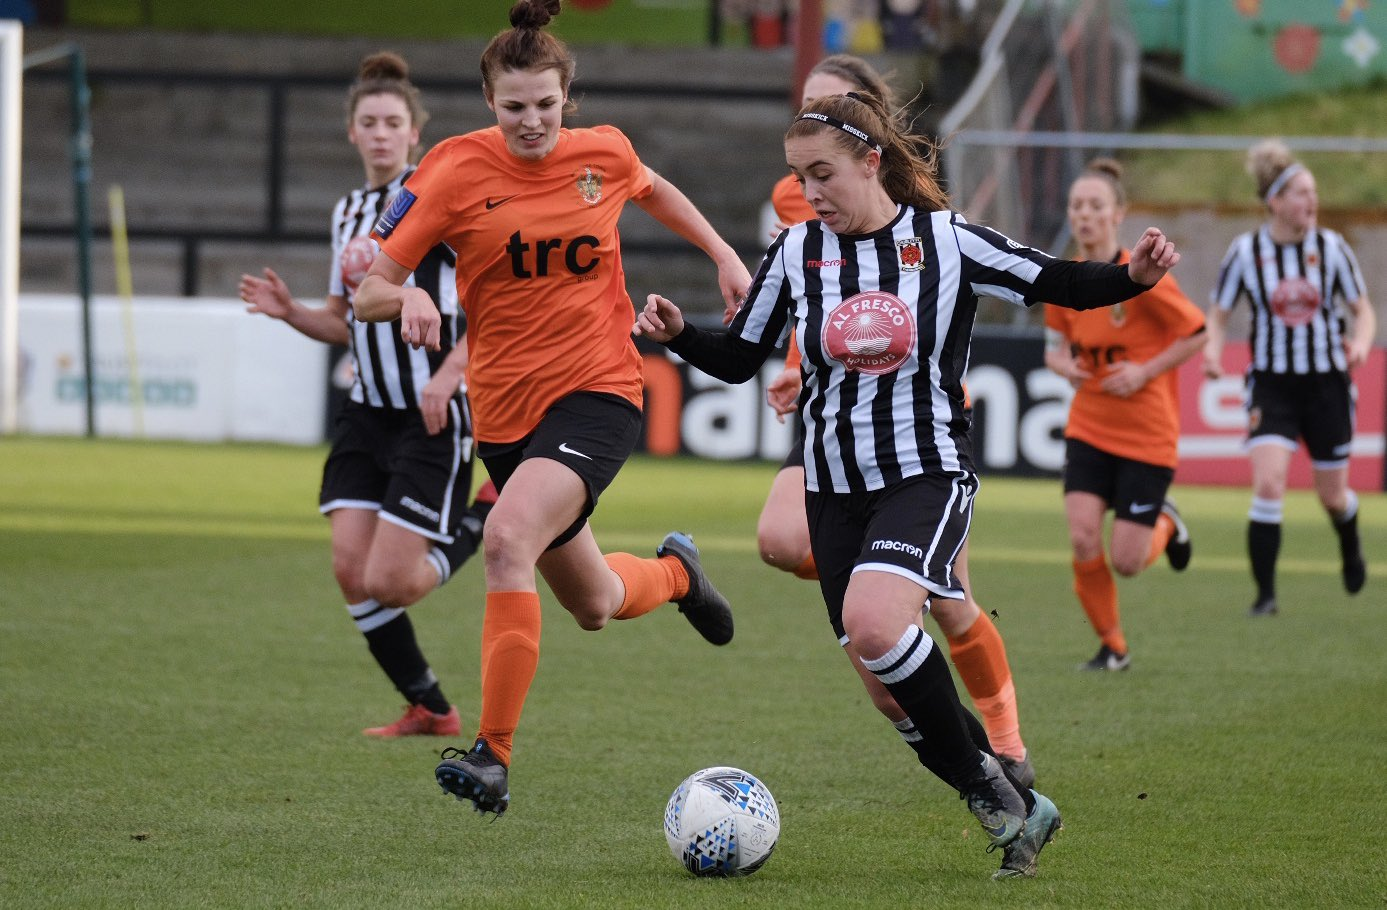 Brighouse won after extra-time at Chorley